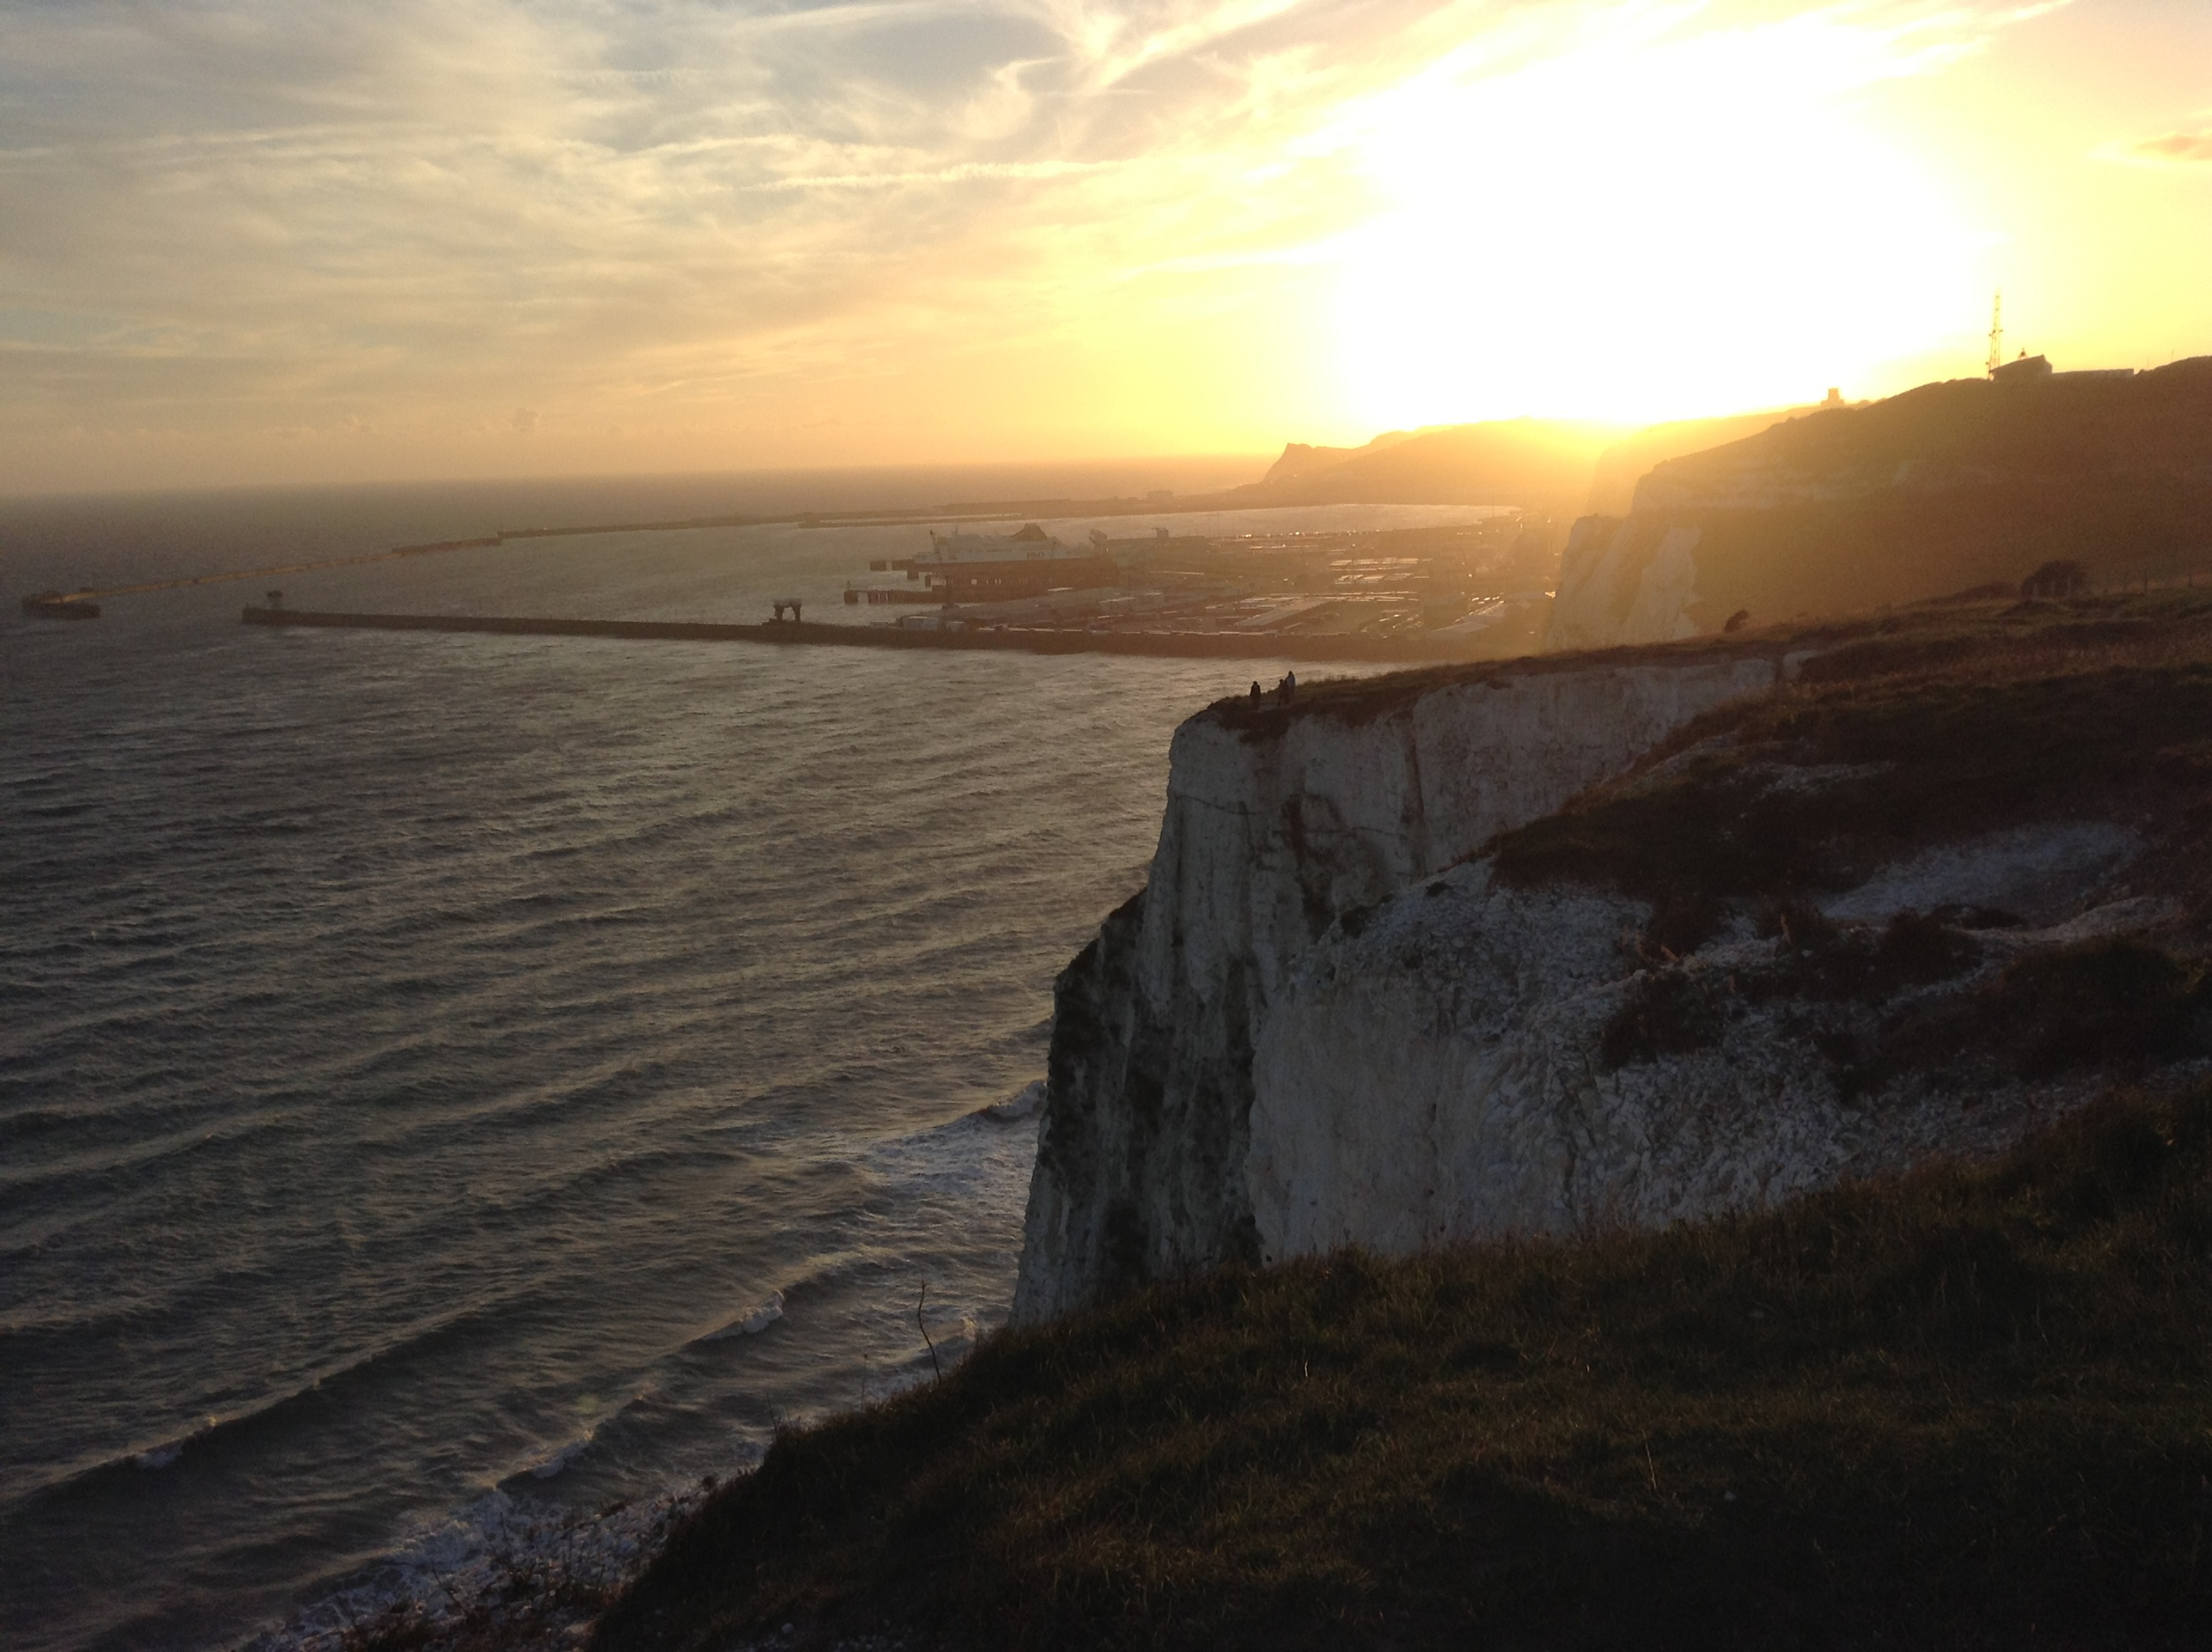 White Cliffs of Dover with Port of Dover in the background